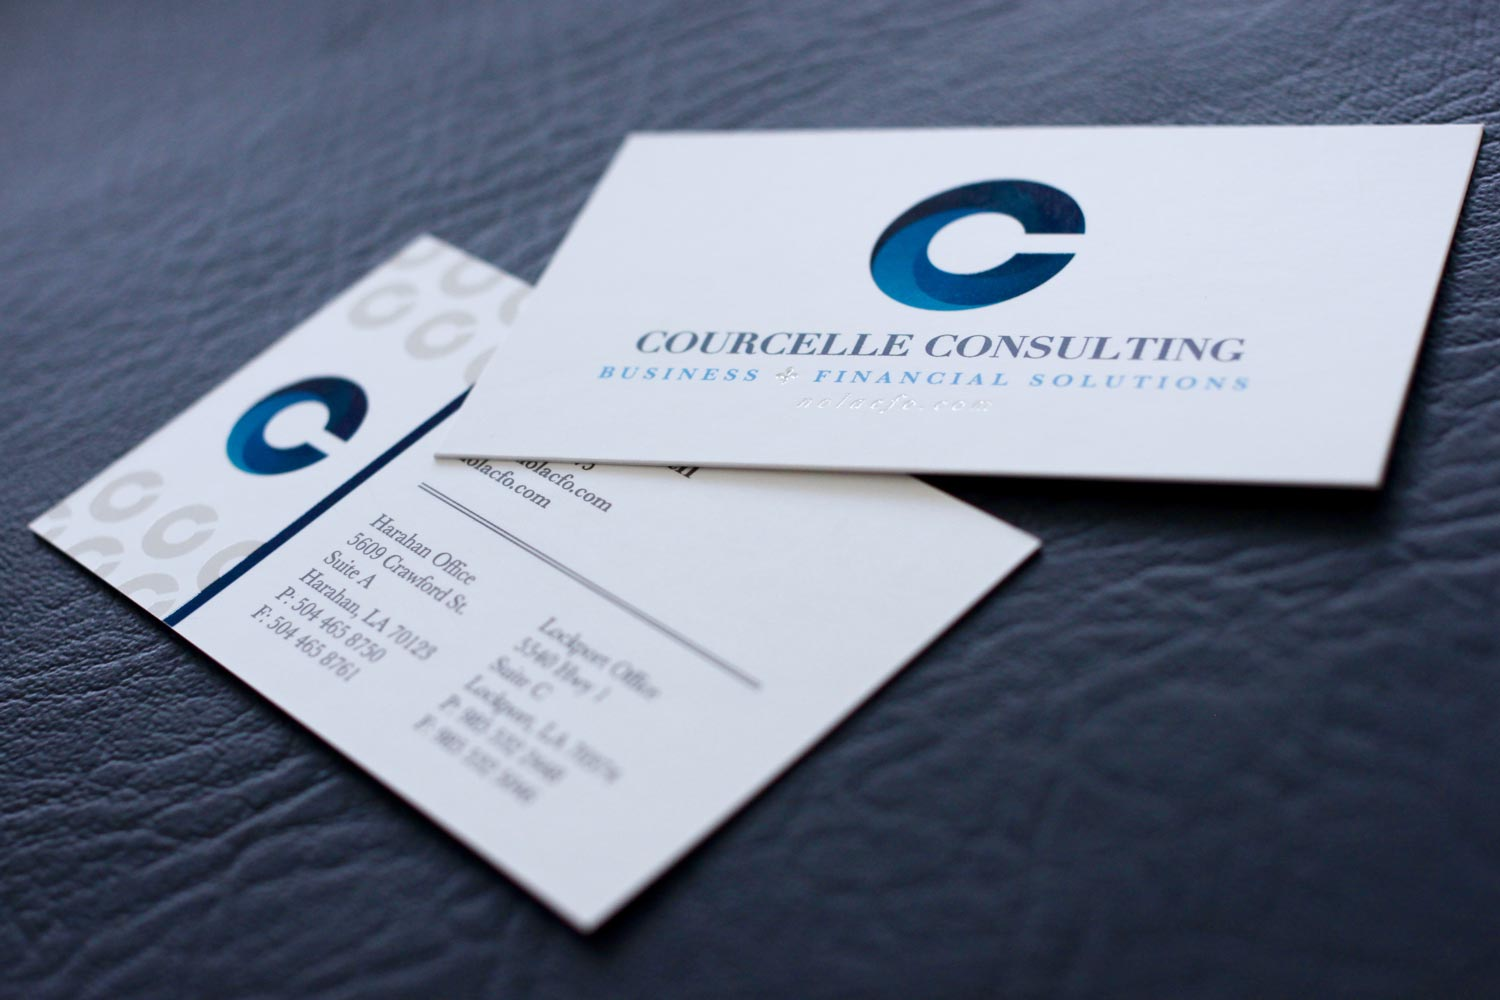 Business Card Design for Courcelle Consulting